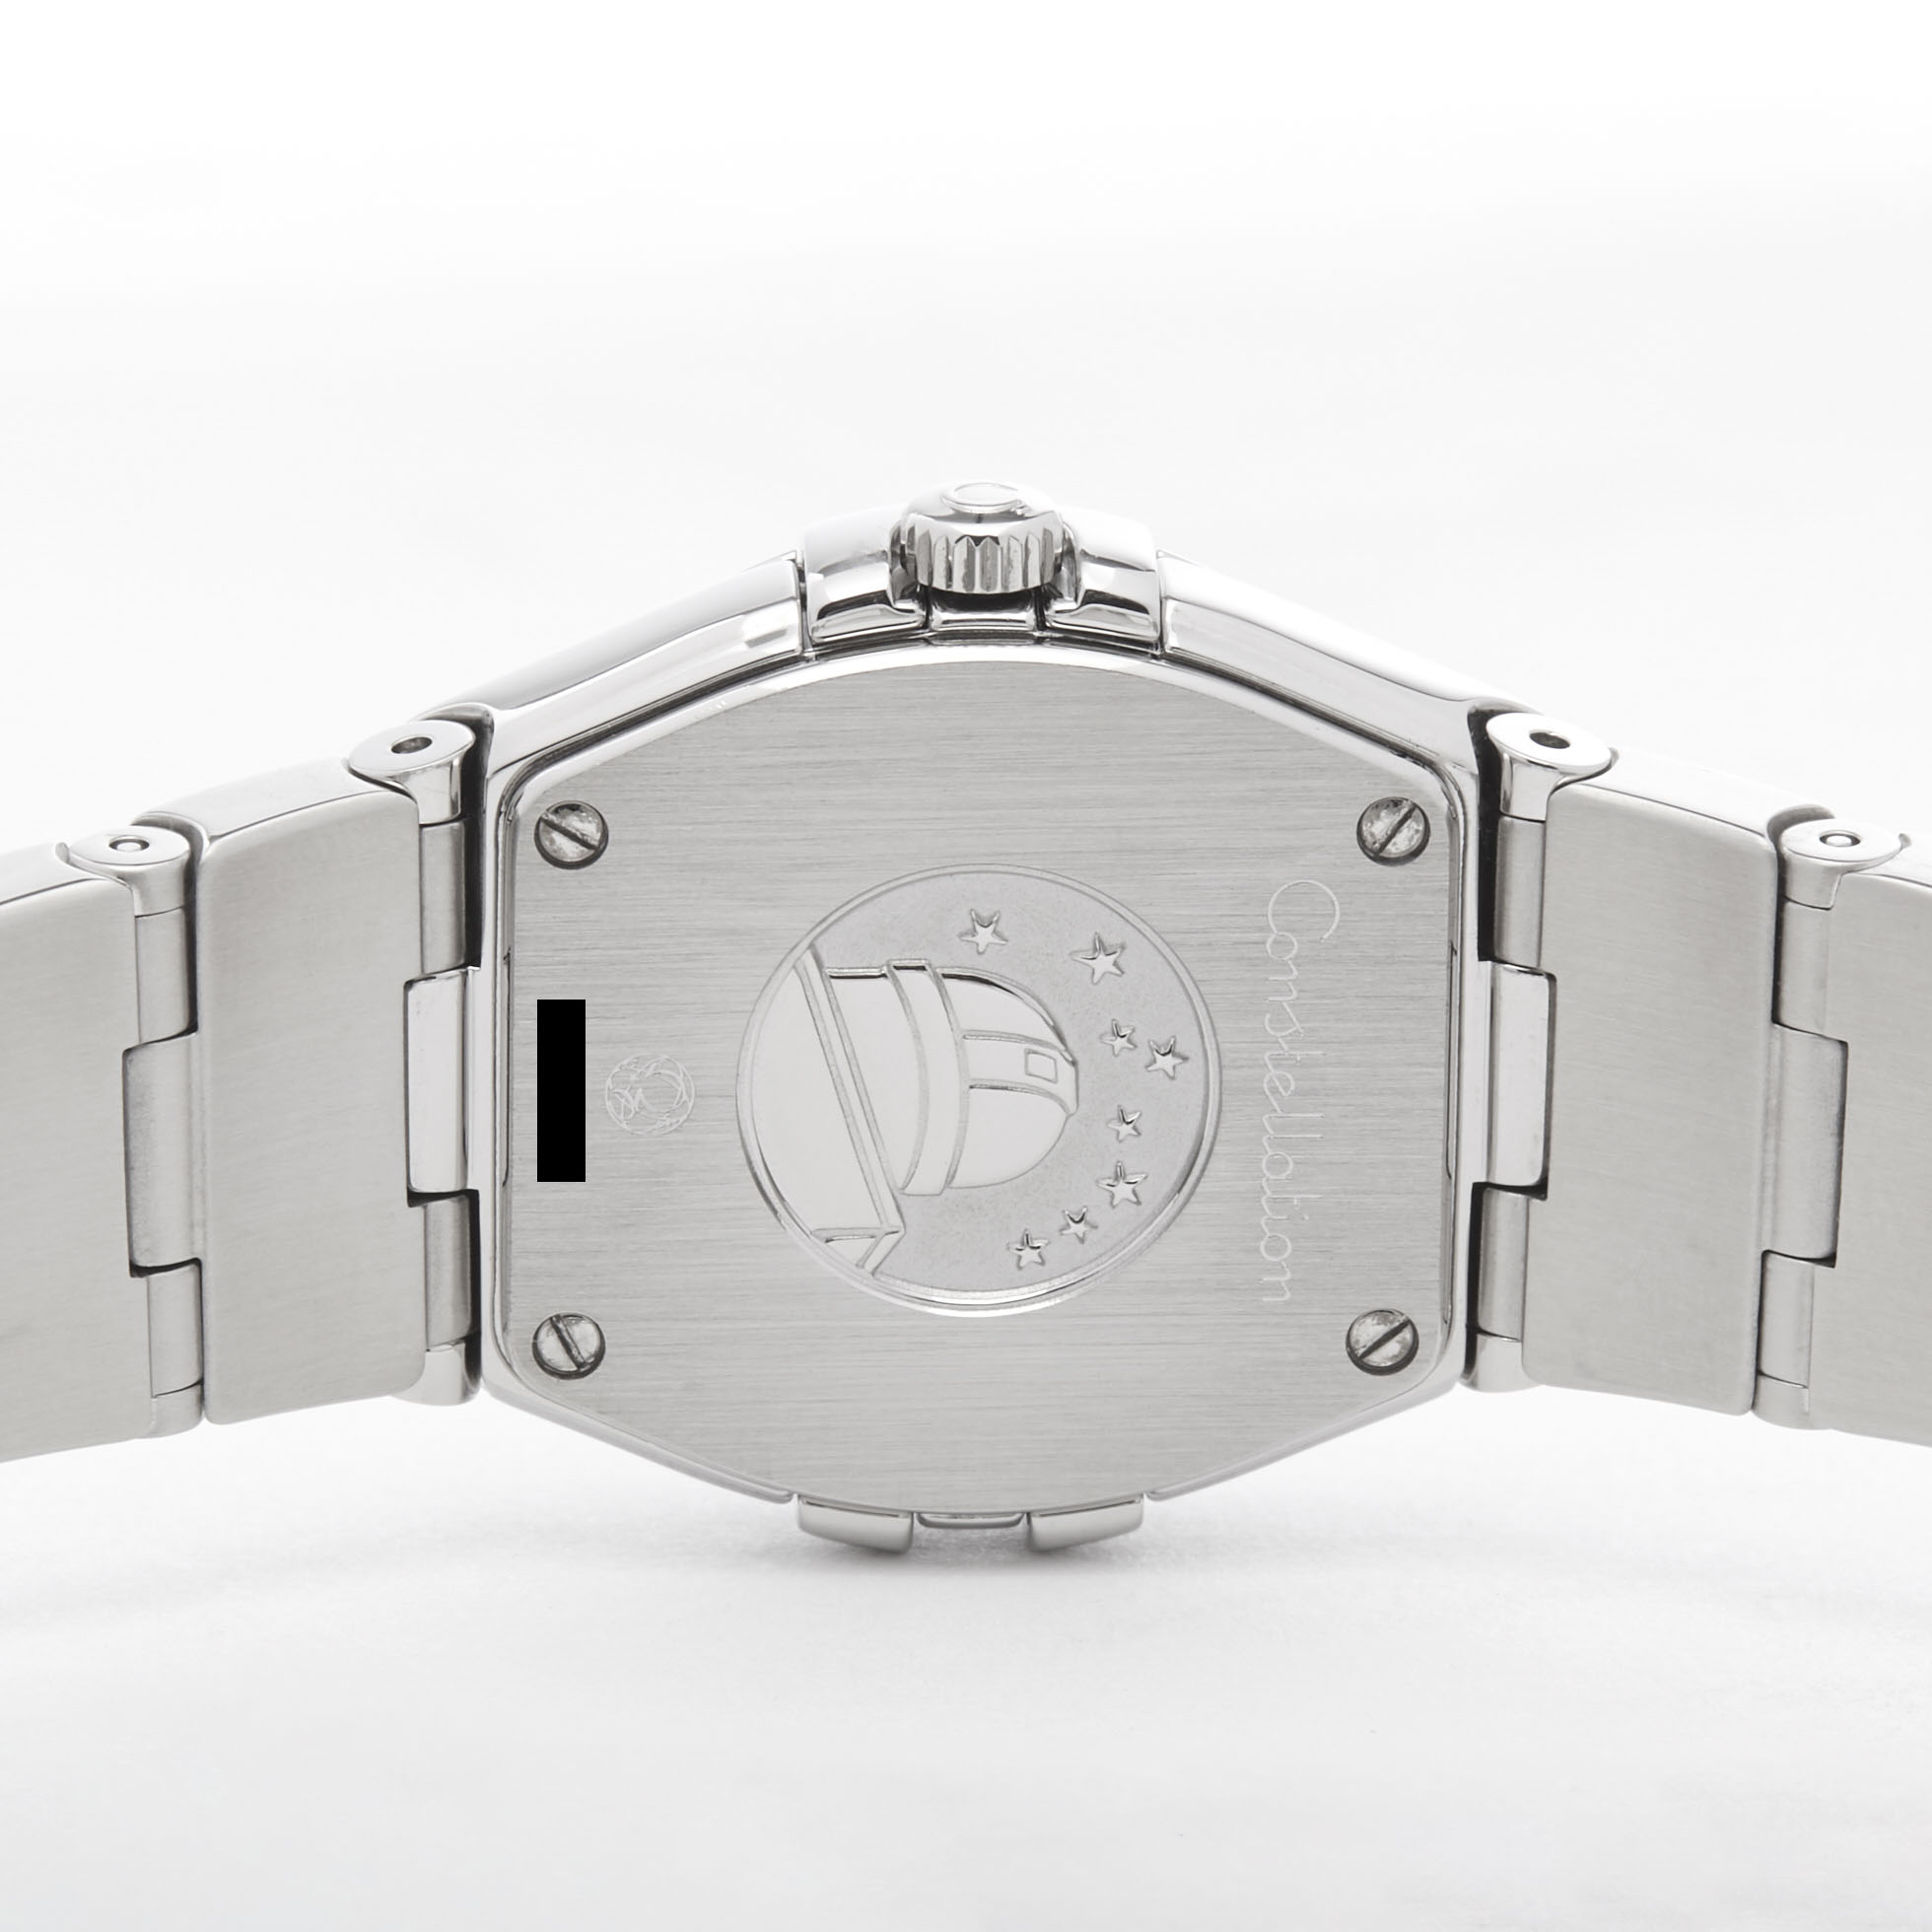 Omega Constellation 123.10.24.60.02.00 Ladies Stainless Steel Watch - Image 3 of 7